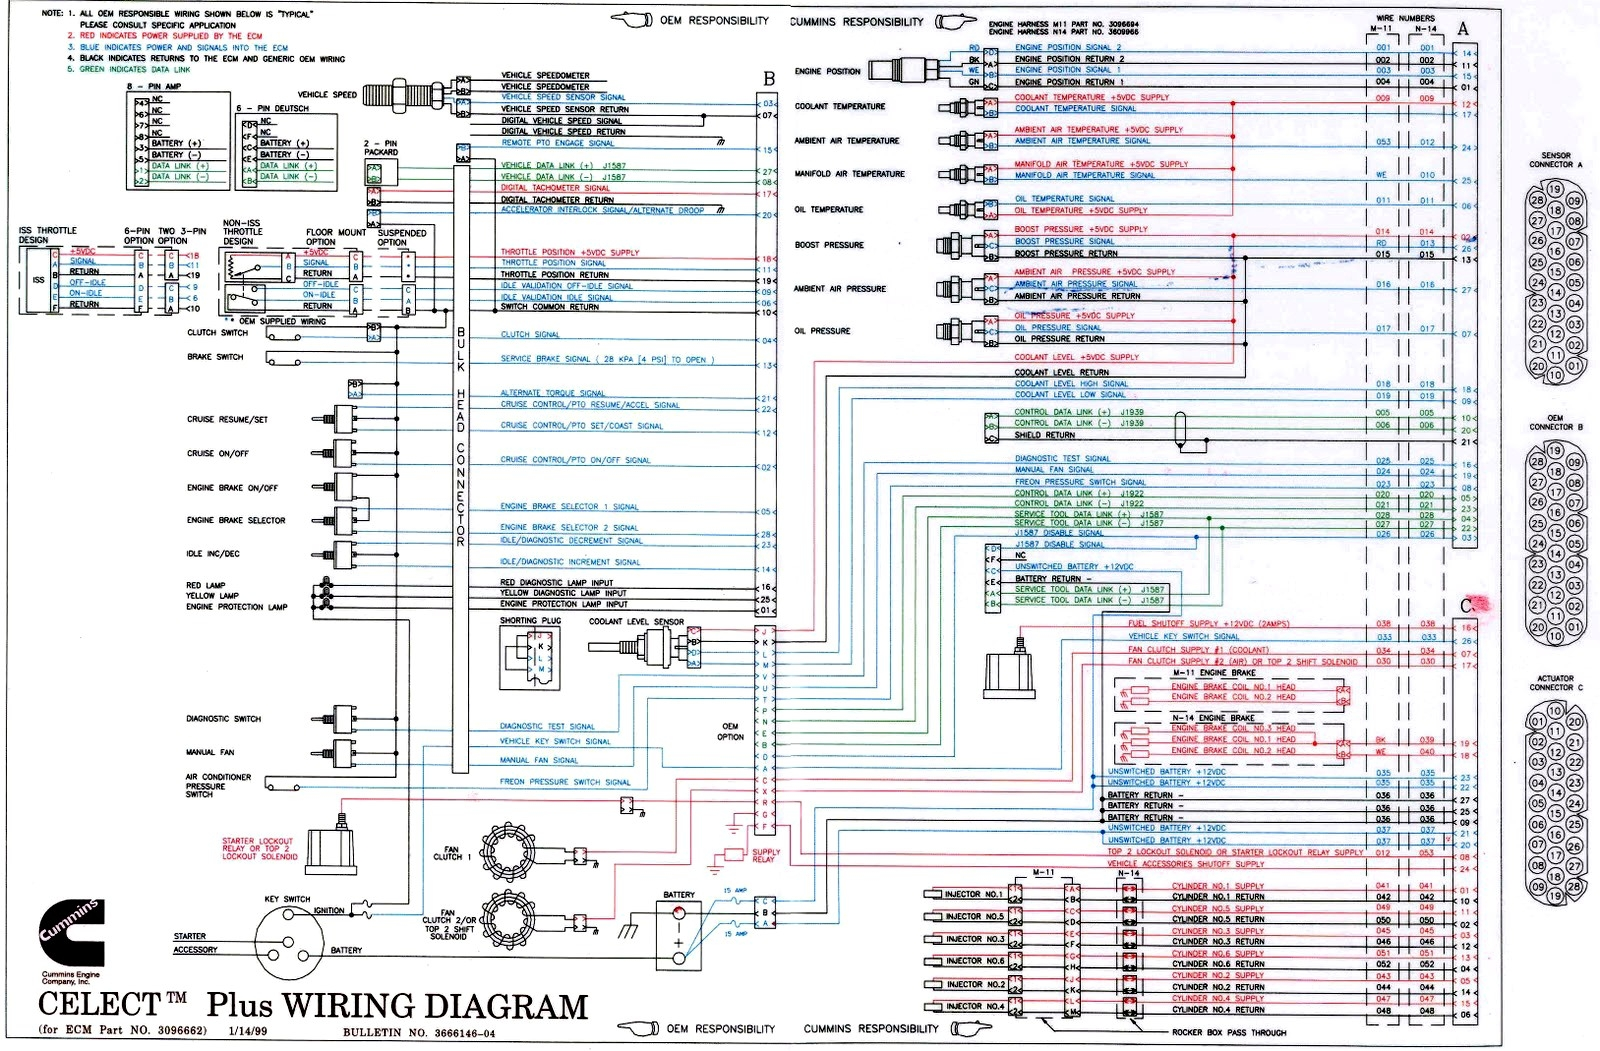 Ddec Iii Ecm Wiring Diagram Free Download Wiring Diagram Schematic